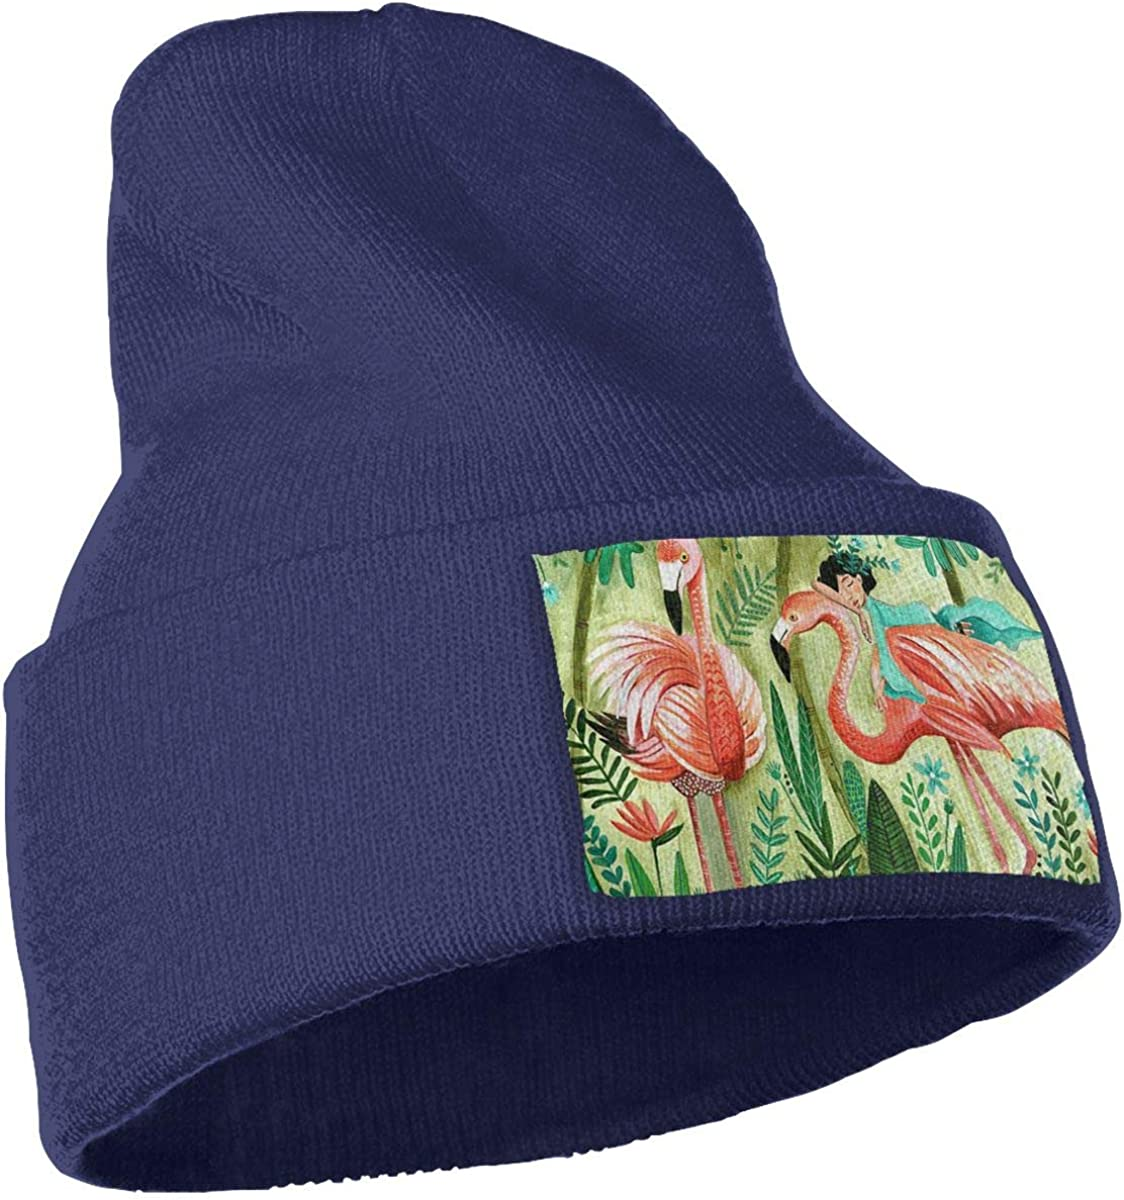 Jungle Flamingo Hat for Men and Women Winter Warm Hats Knit Slouchy Thick Skull Cap Black